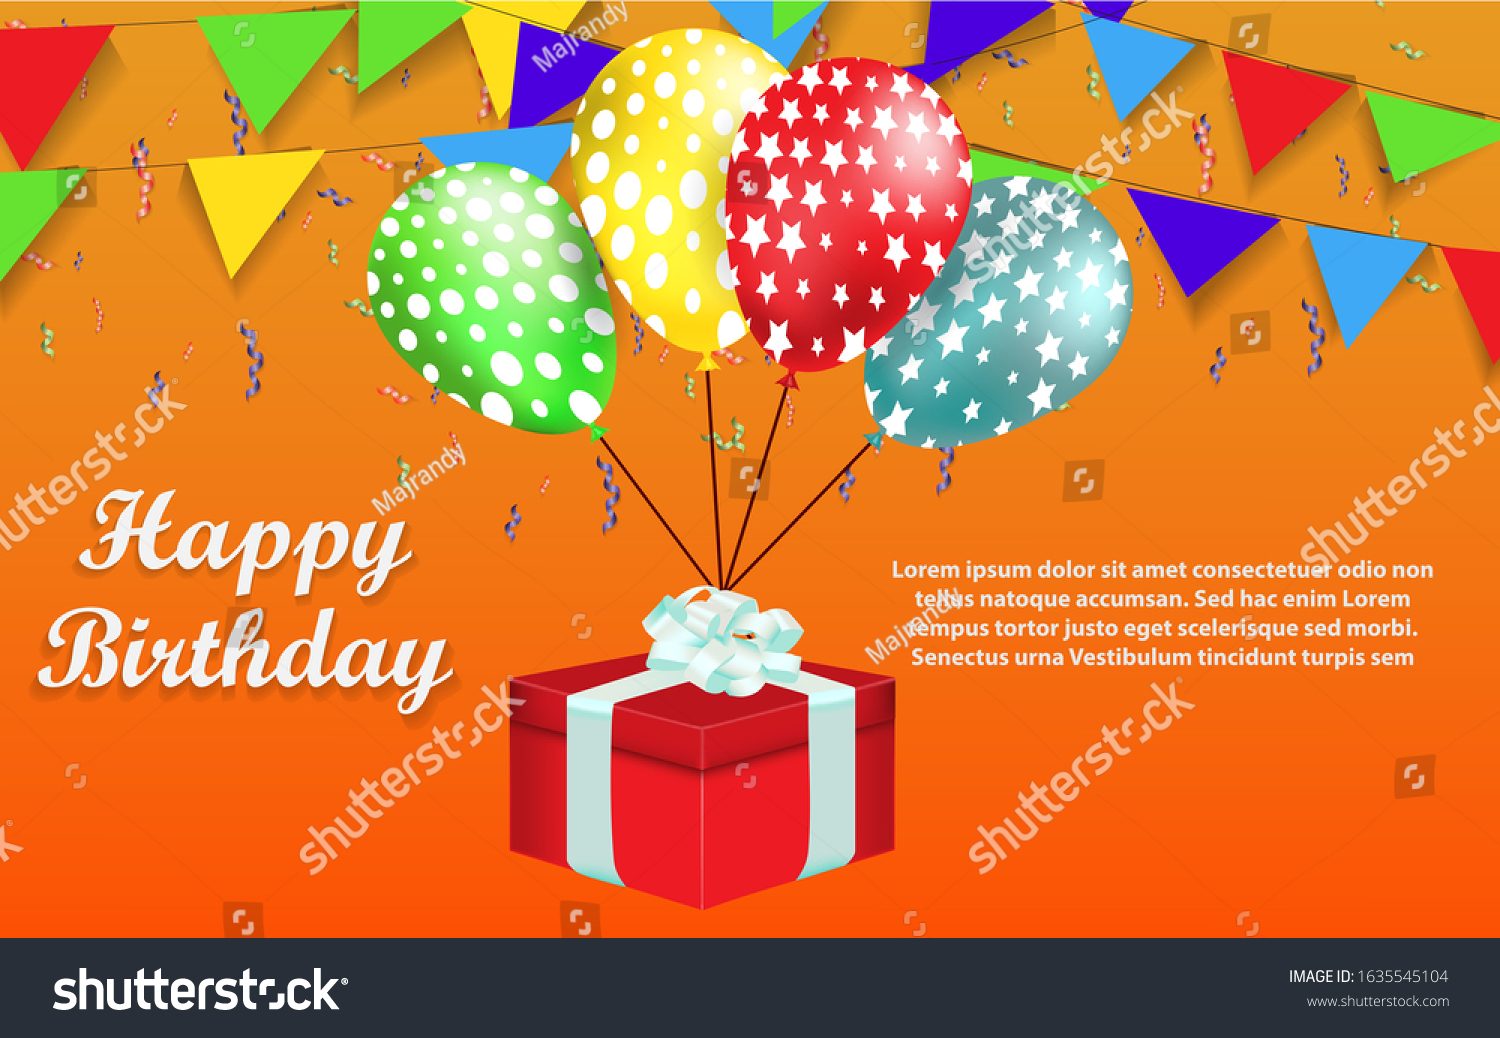 Simple Background Birthday Wishes Balloon Confetti Stock Vector Royalty Free 1635545104,Low Cost Minimalist House Design Interior